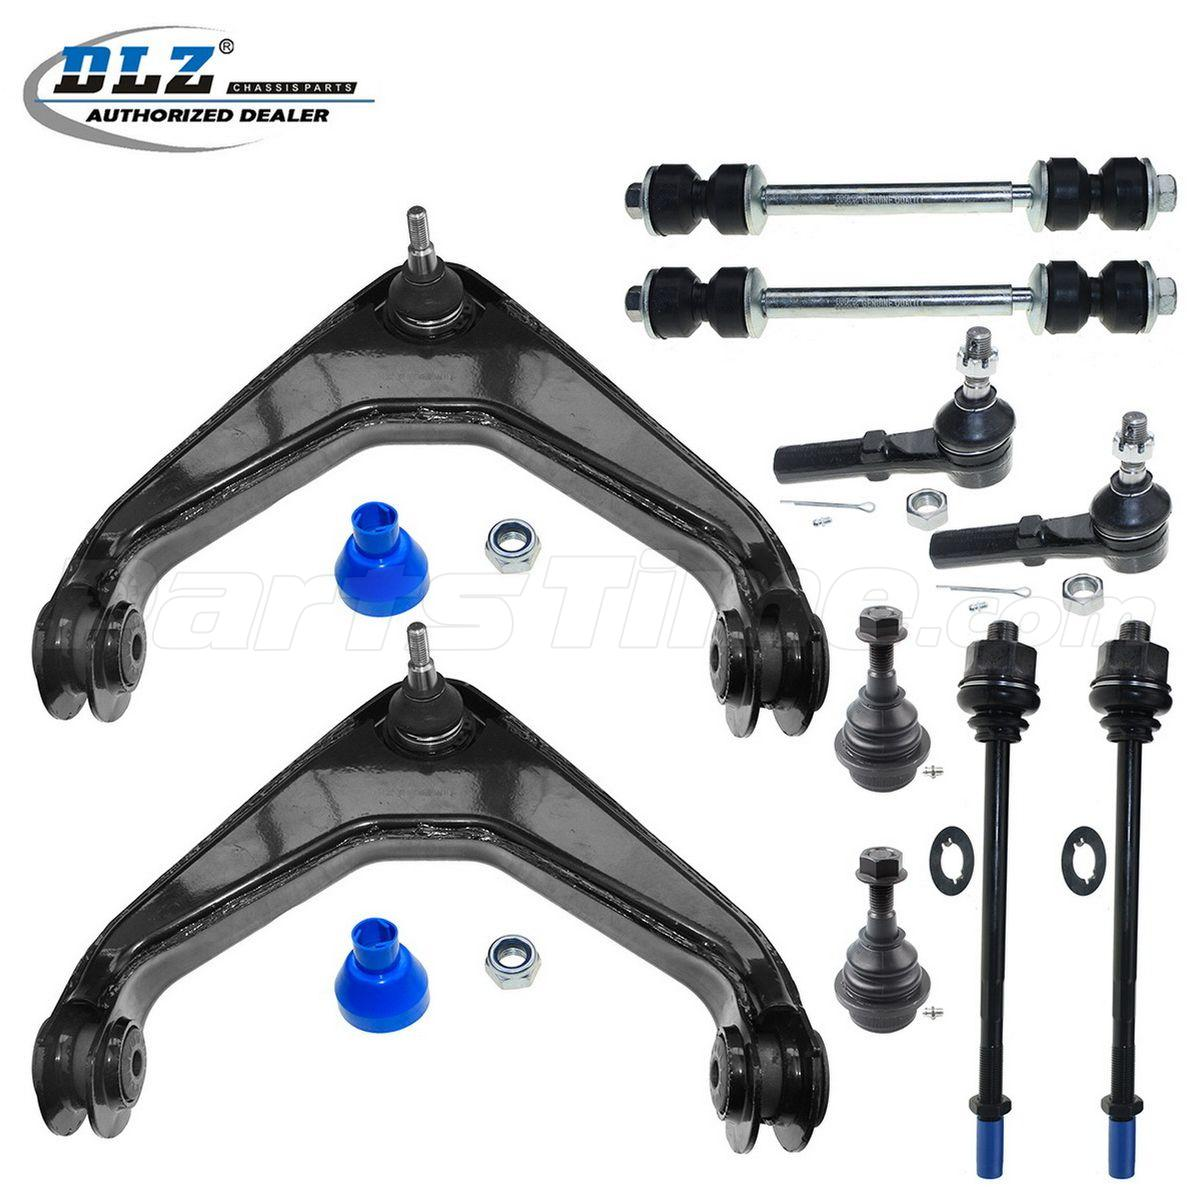 10 PCS Front Suspension Kit For 2002-2006 CHEVROLET